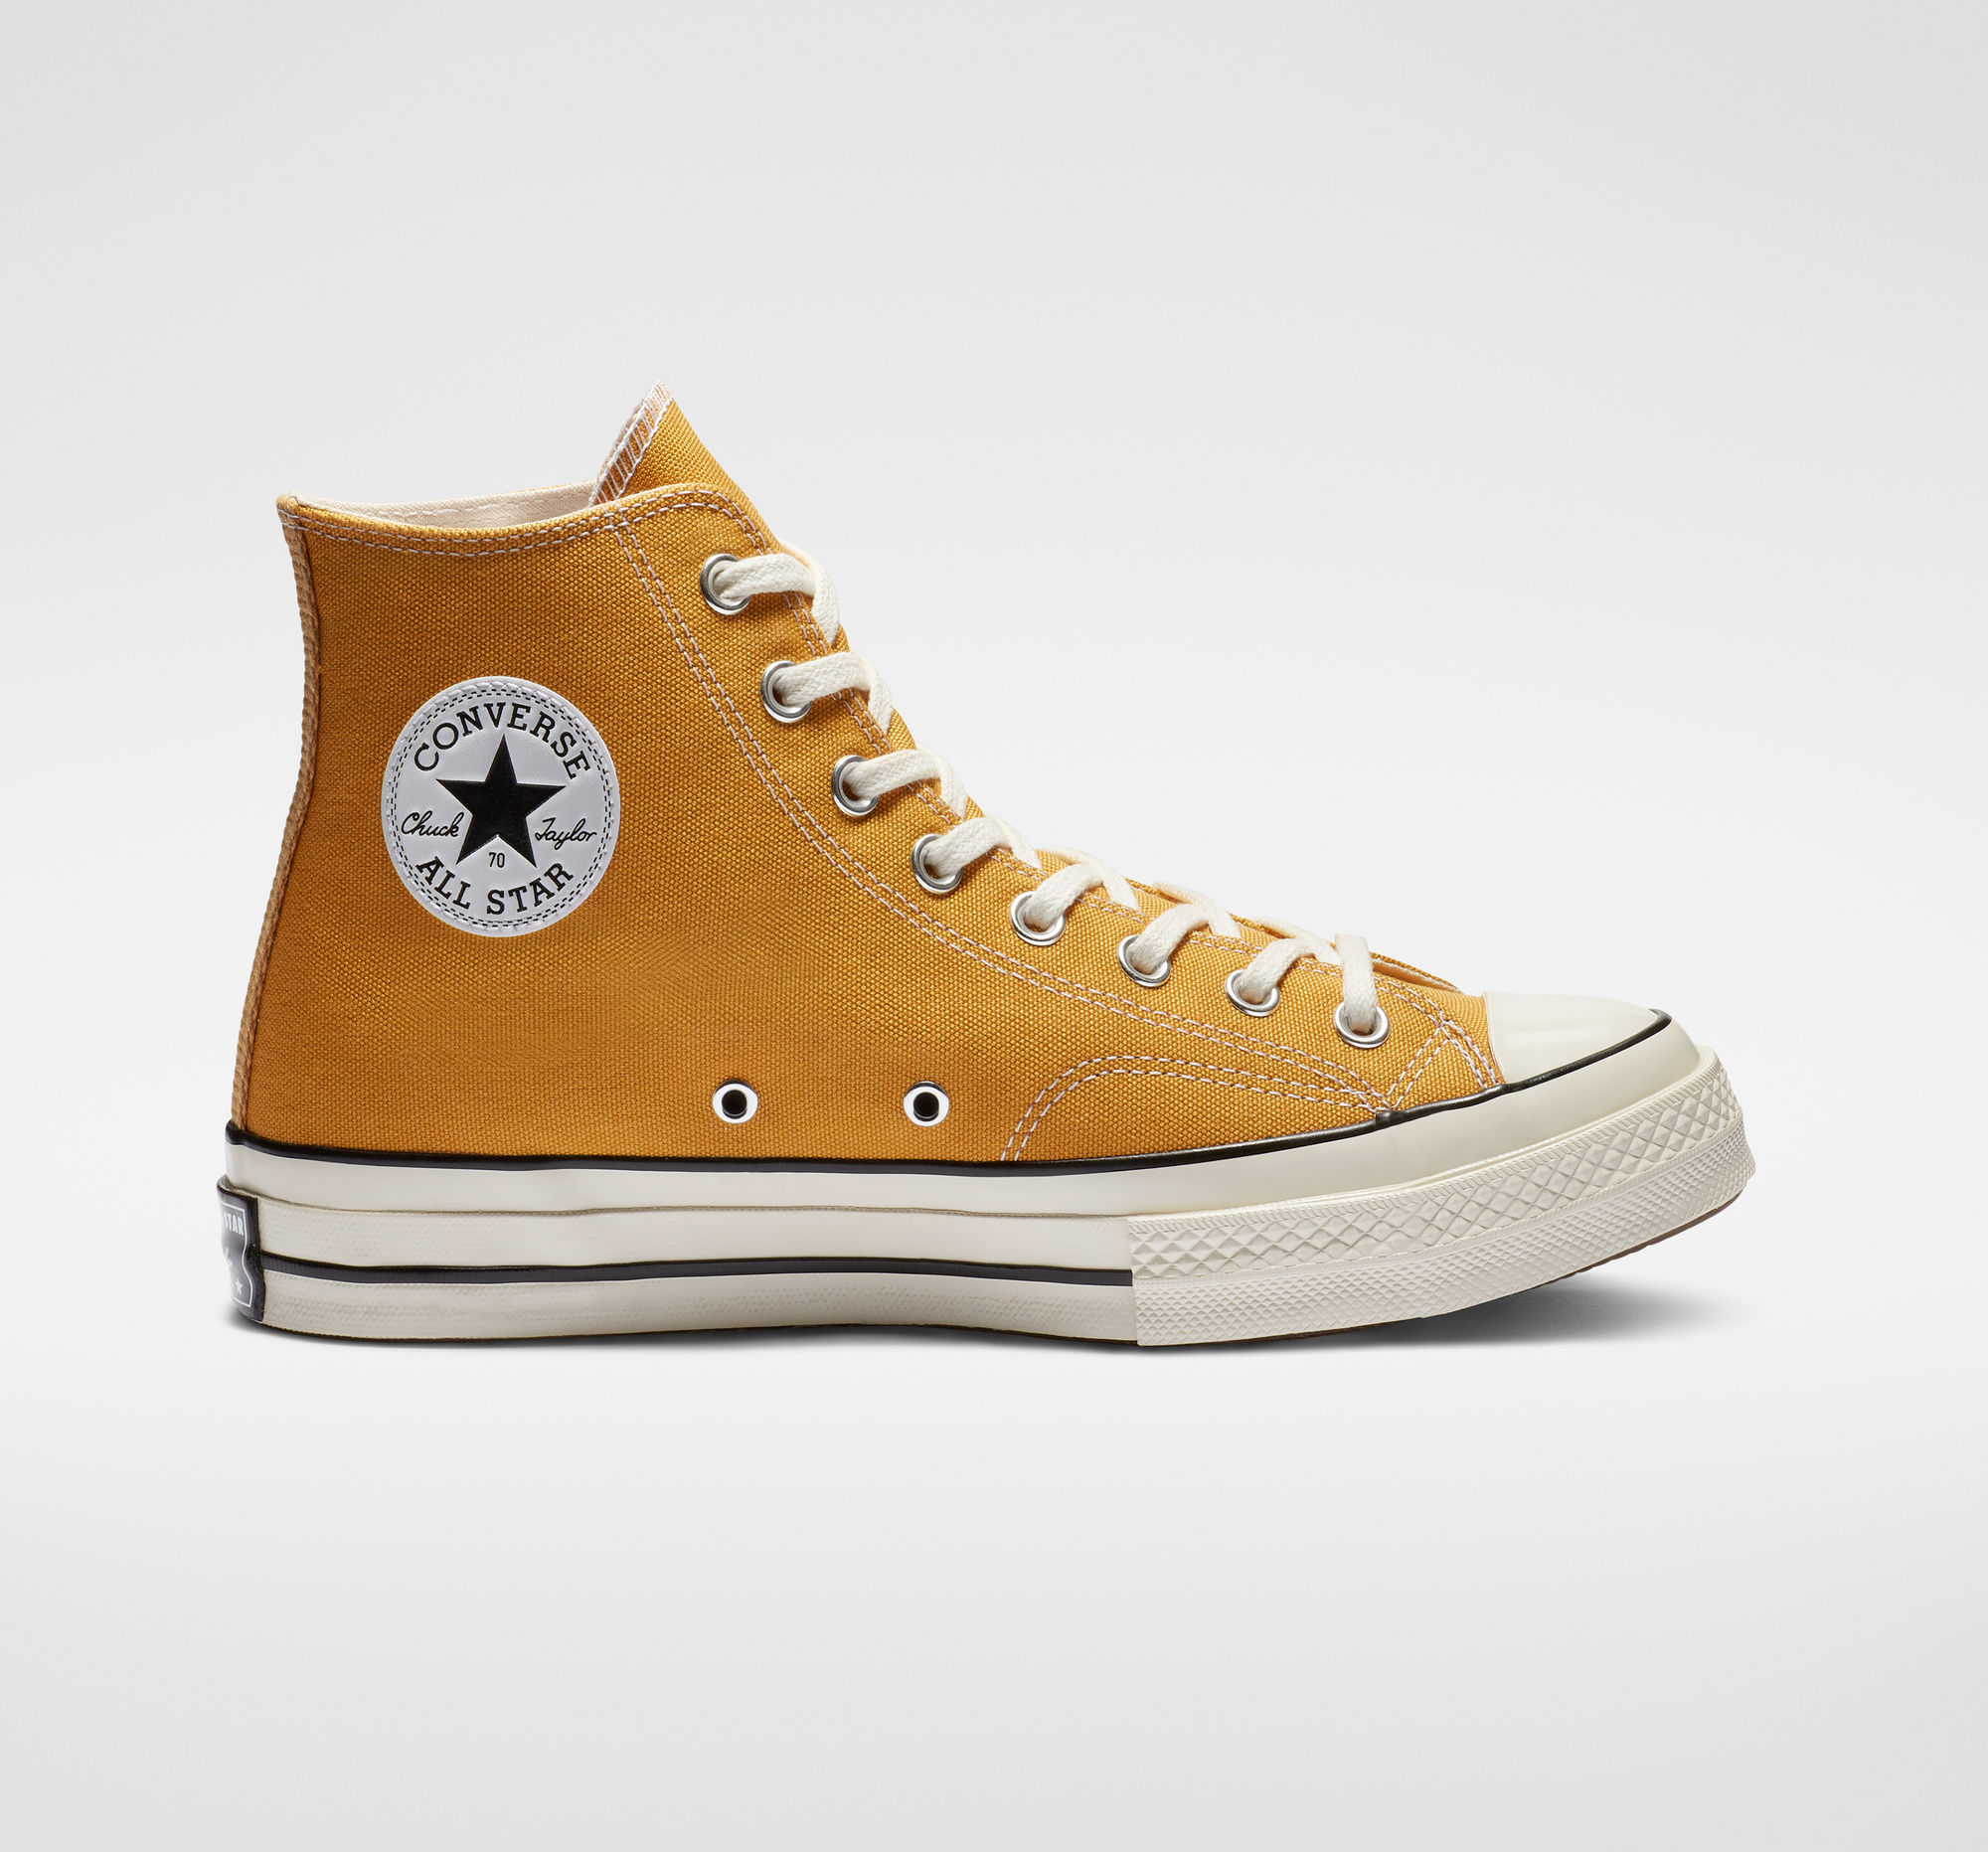 3589de7a3d38 Converse Yellow Shoe Gallery: The 25 Best Yellow Converse Shoes